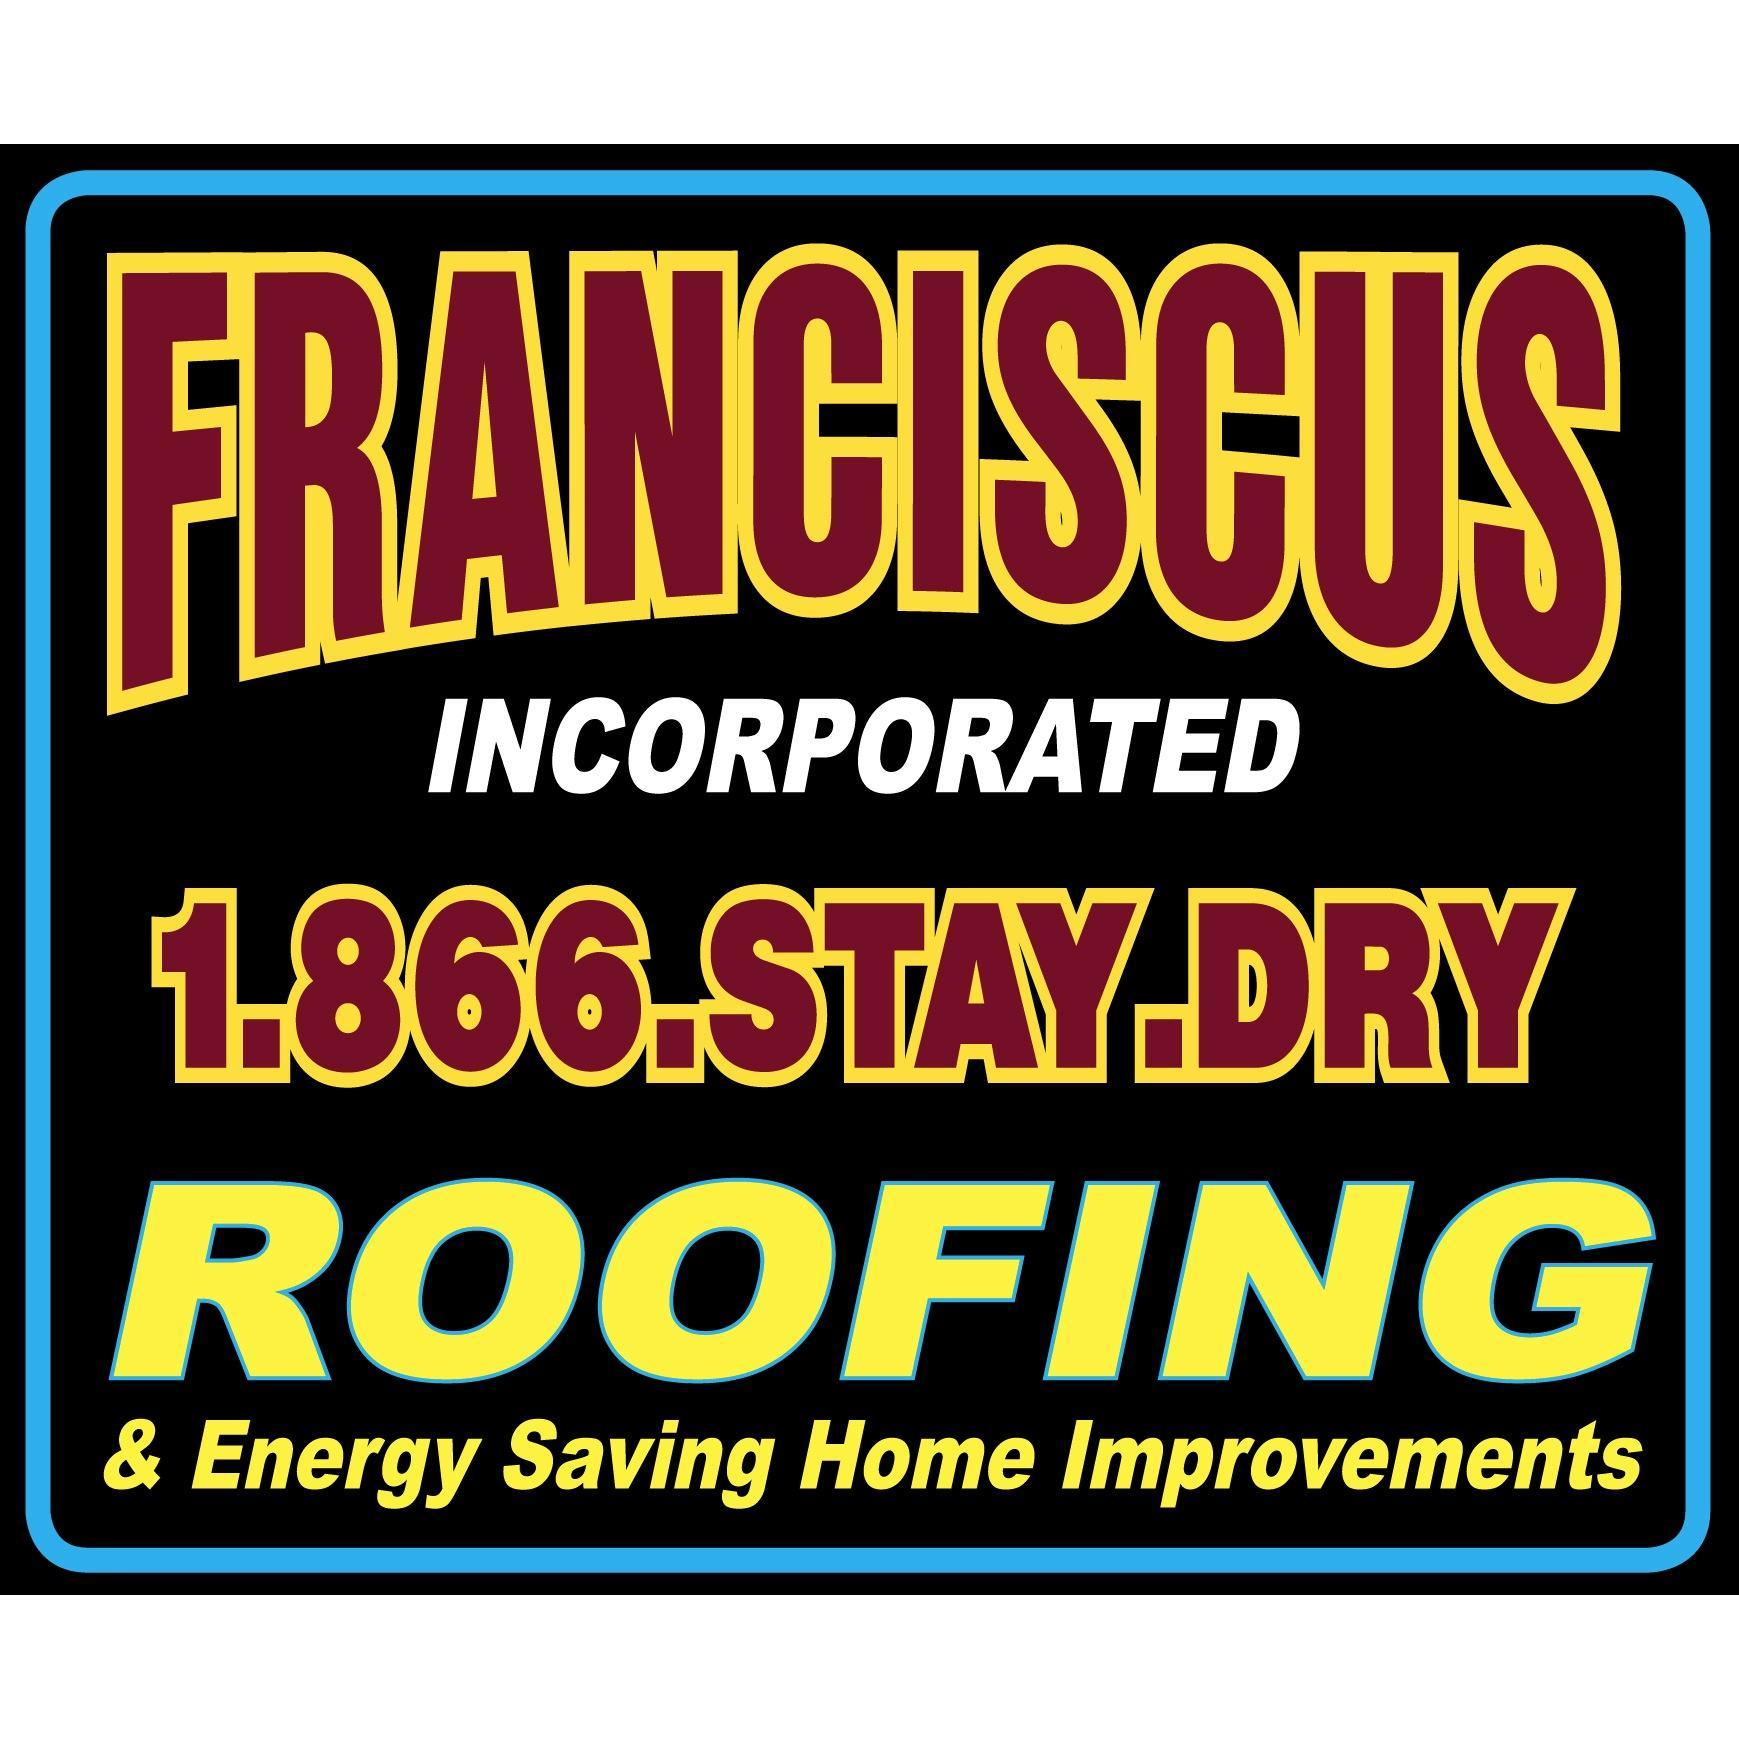 Franciscus Roofing